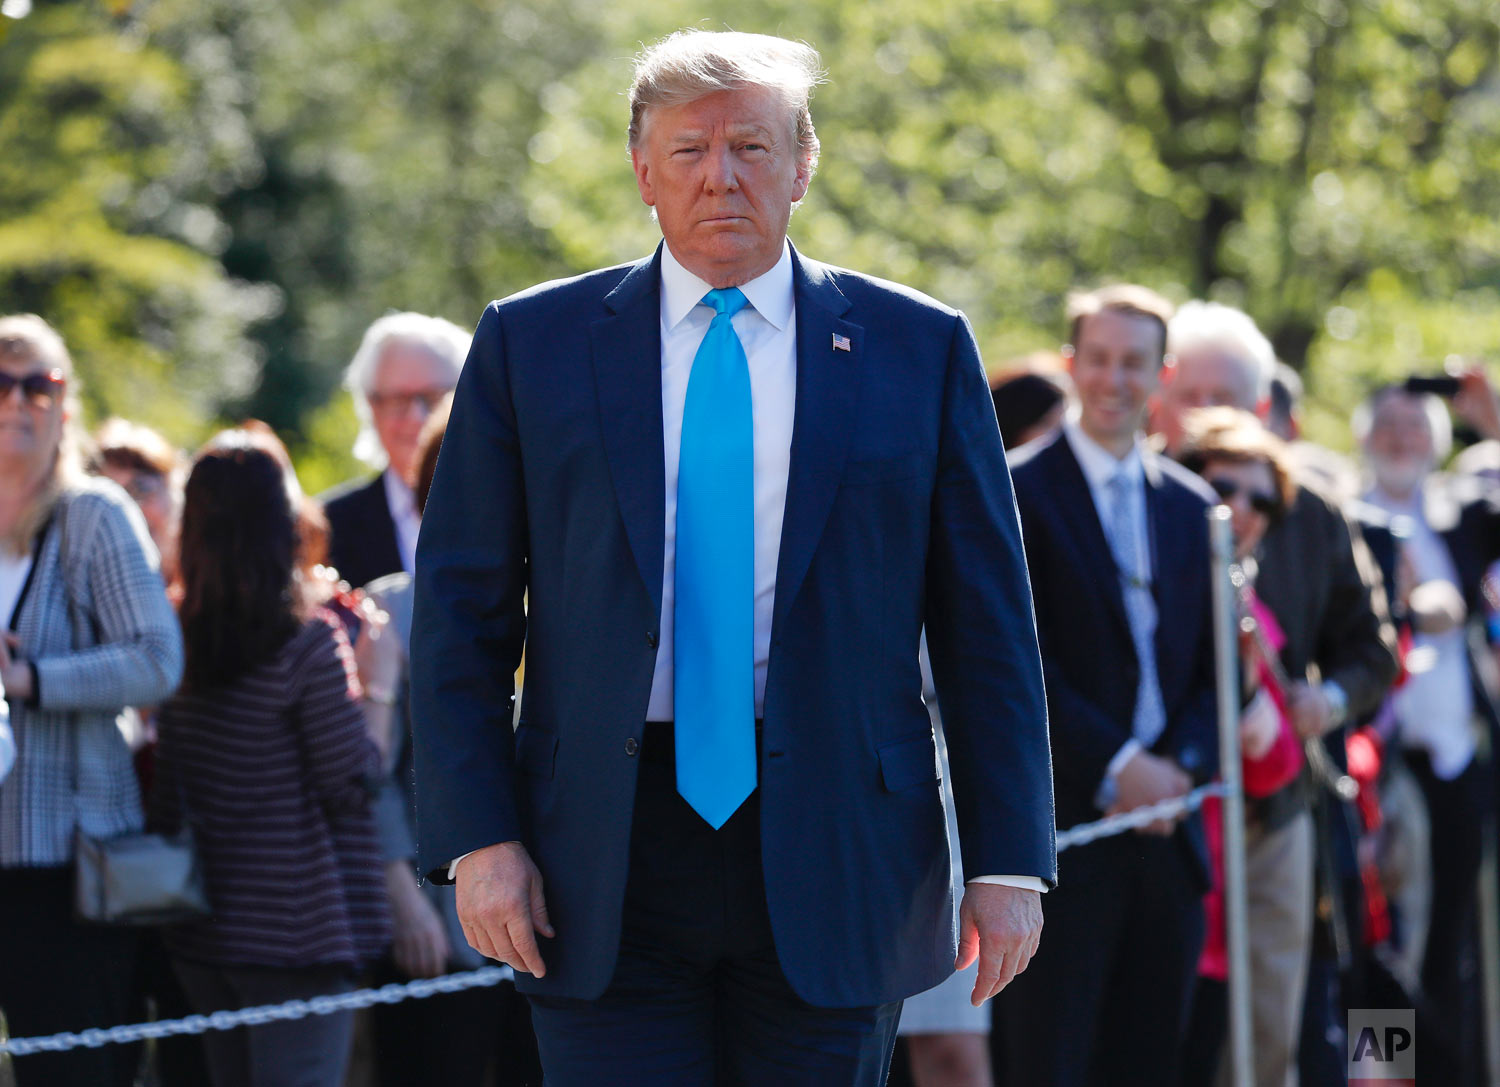 President Donald Trump walks over to begin speaking to members of the media on the South Lawn of the White House in Washington, before boarding Marine One helicopter April 10, 2019. (AP Photo/Pablo Martinez Monsivais)